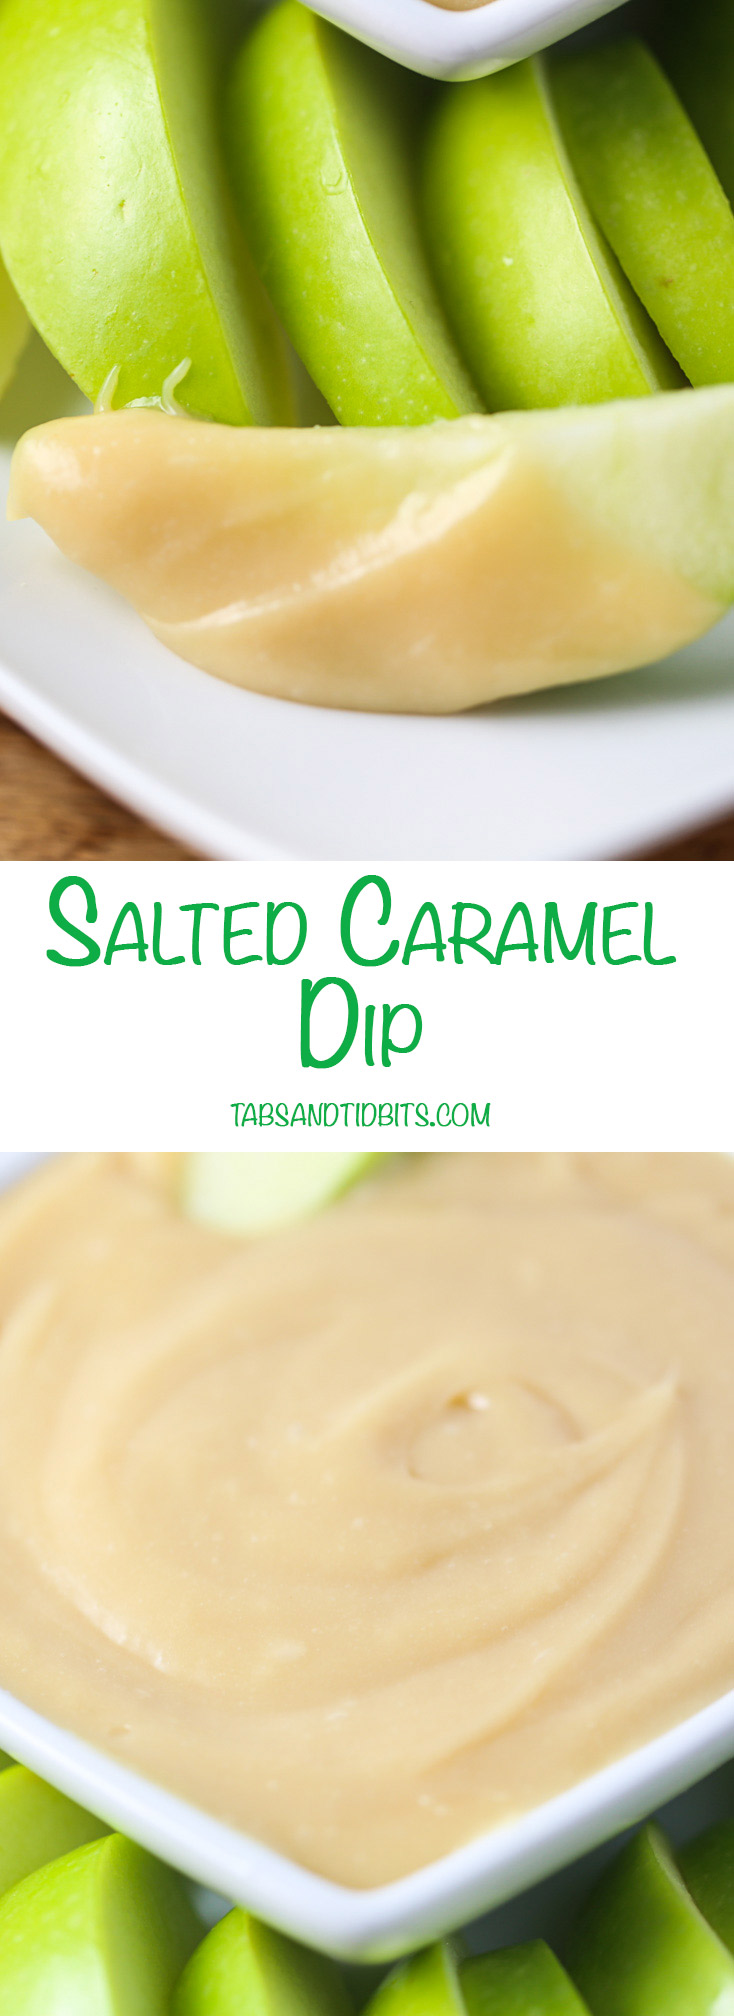 Salted Caramel Dip - This dip comes together in less than 10 minutes!